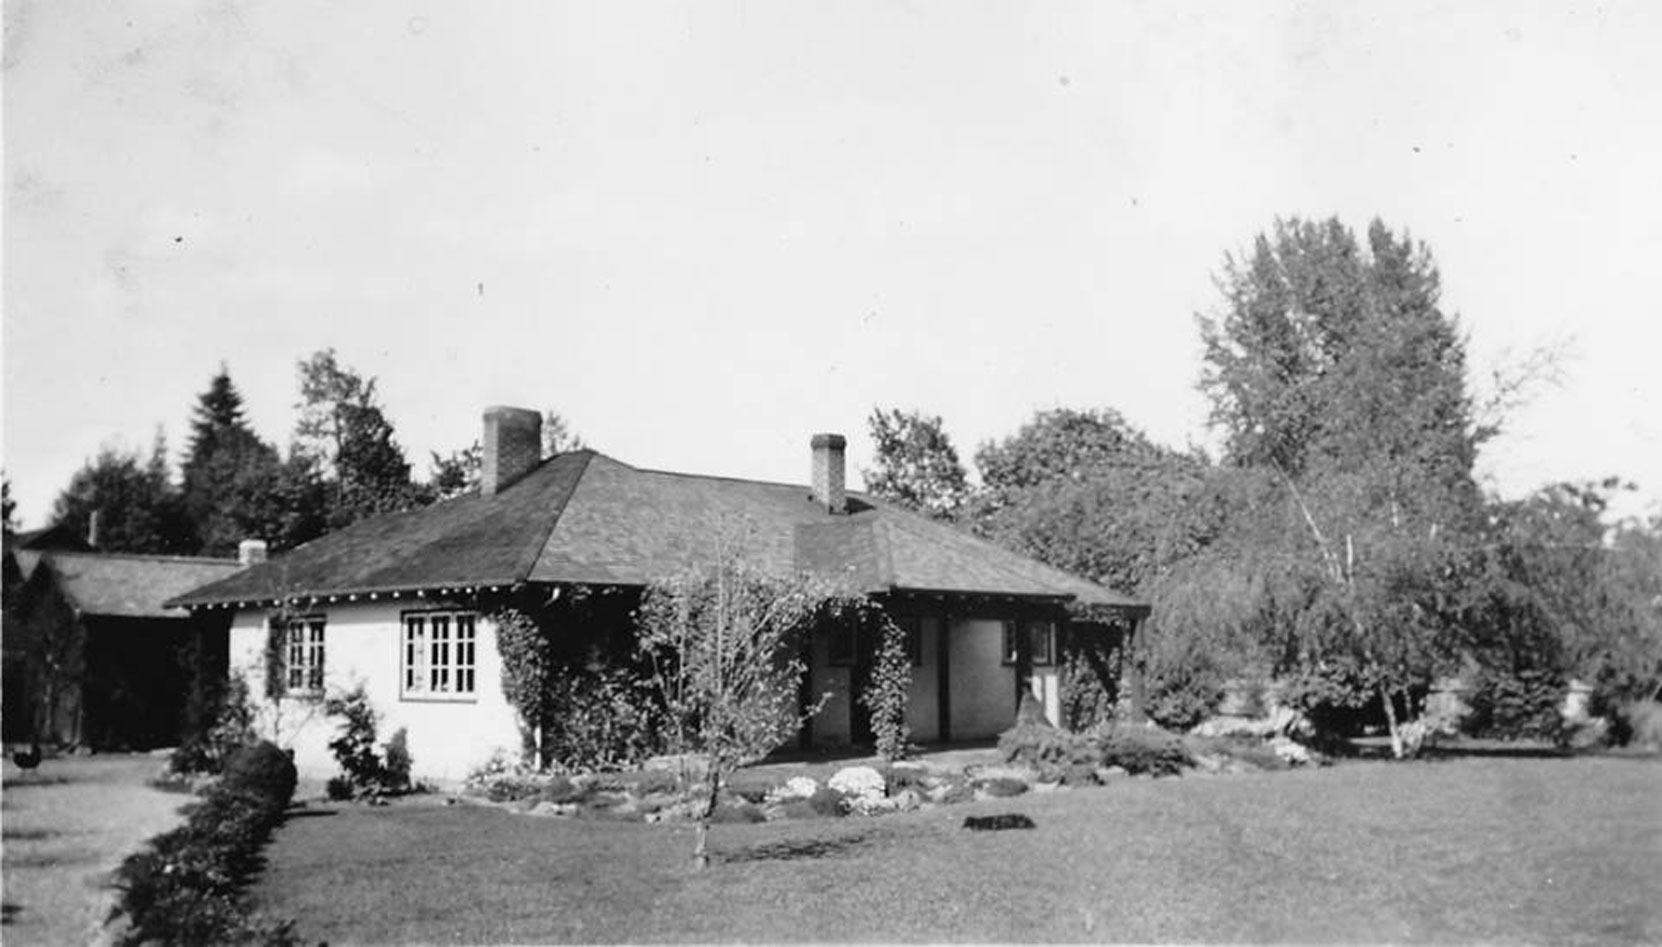 Claude Green's house at 733 Wharncliffe Road, Duncan circa 1940. (courtesy of Claude Green's daughter Sylvia Dyer - private collection. Used with permission)